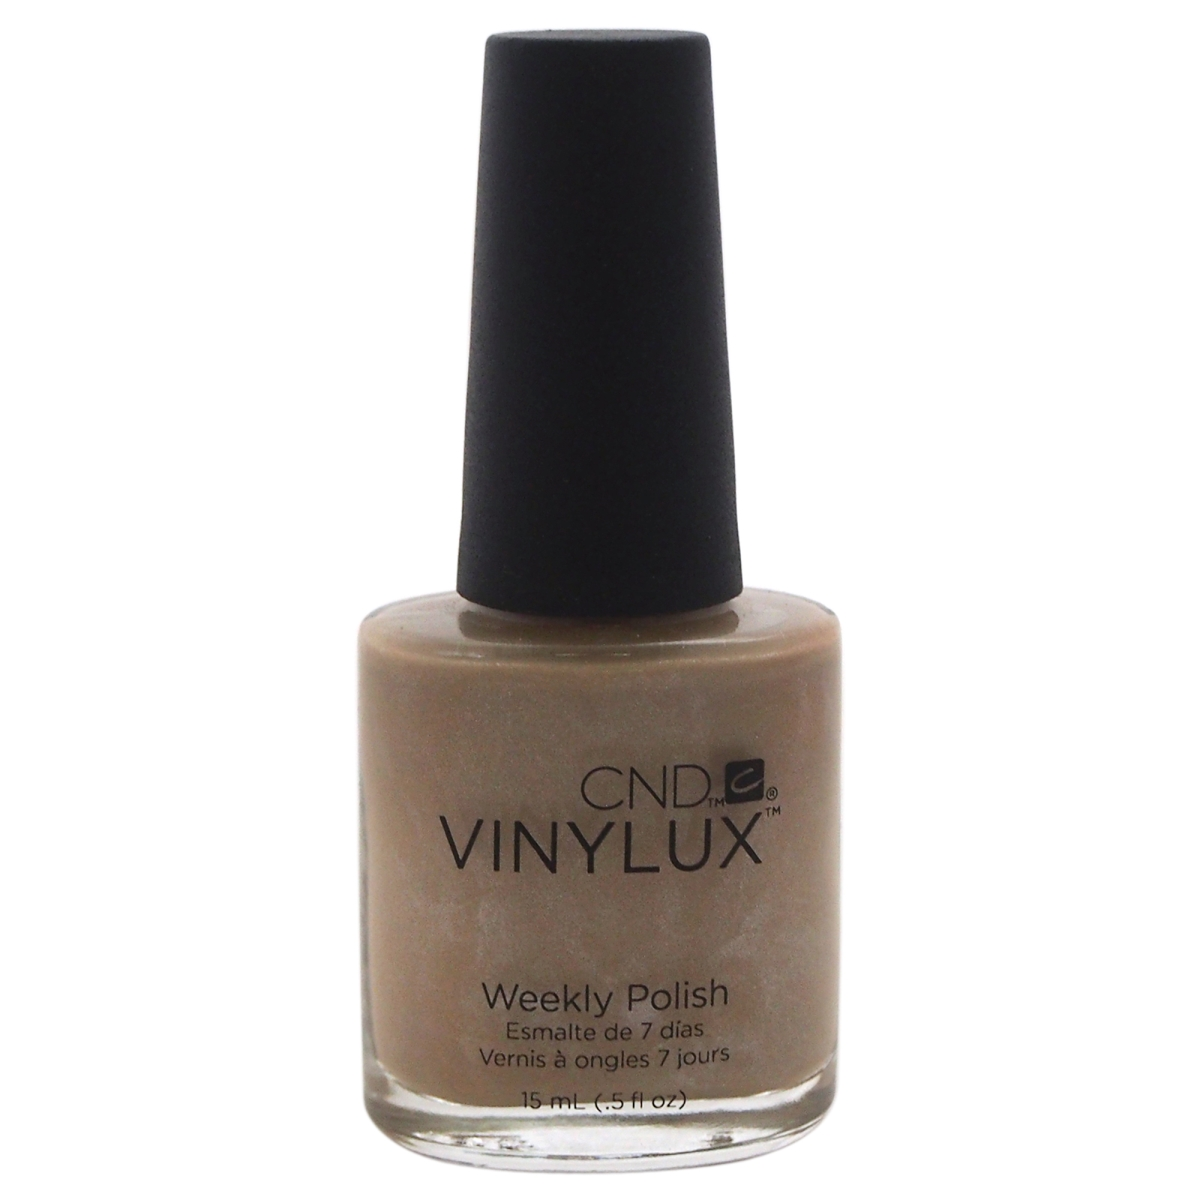 CND W-C-6735 Vinylux Weekly Polish at 123 Impossibly Plush Nail Polish for Women - 0.5 oz